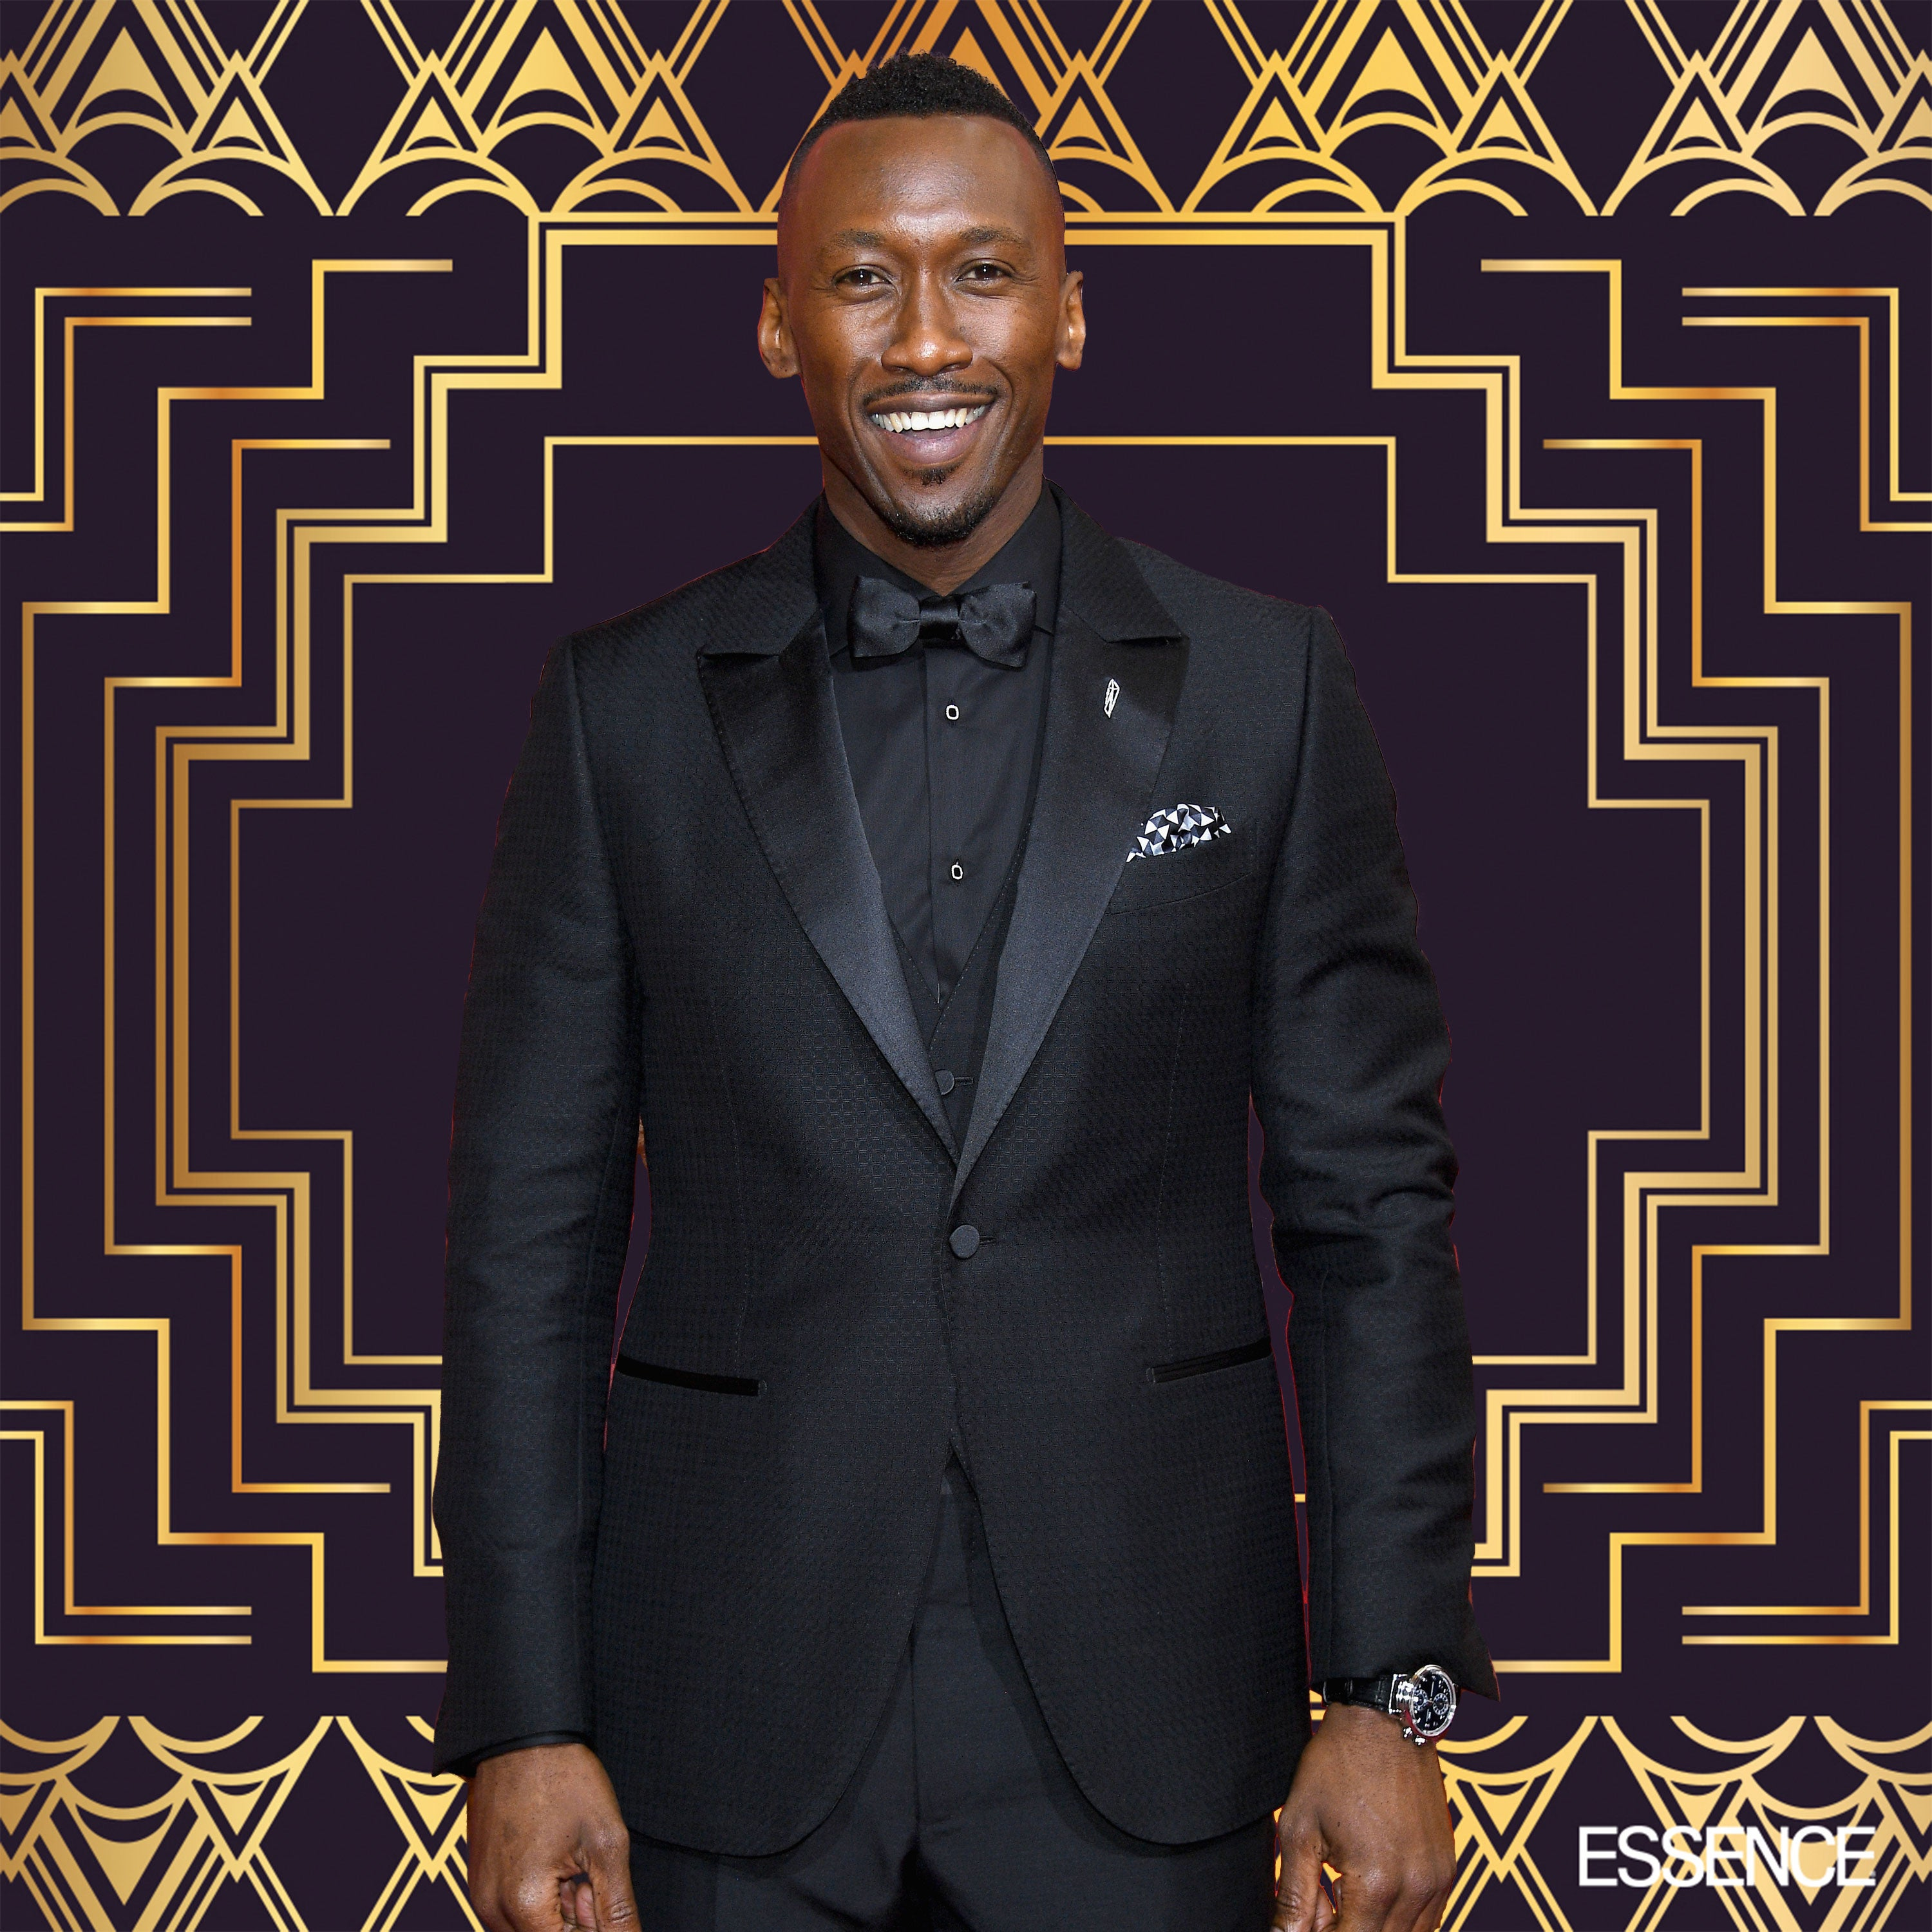 Oscars 2017: Mahershala Ali Becomes First Muslim To Win Best Supporting Actor